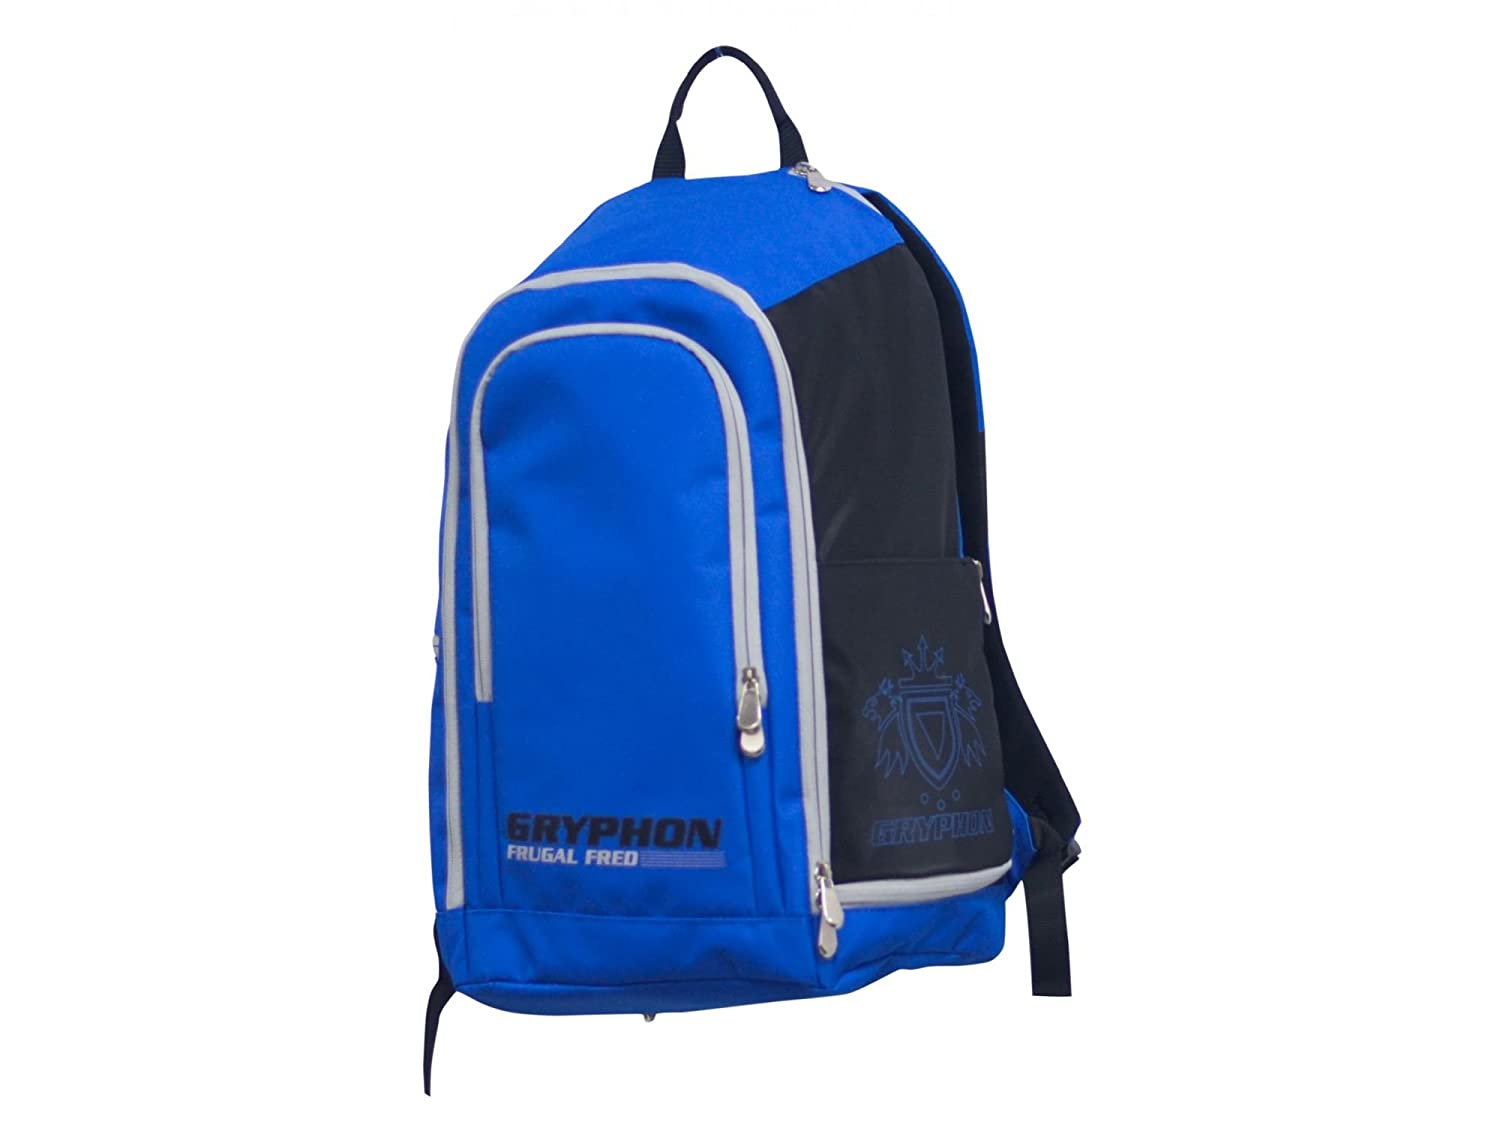 c9be70b1977 Gryphon Frugal Fred Hockey Backpack - Blue (2018/19)